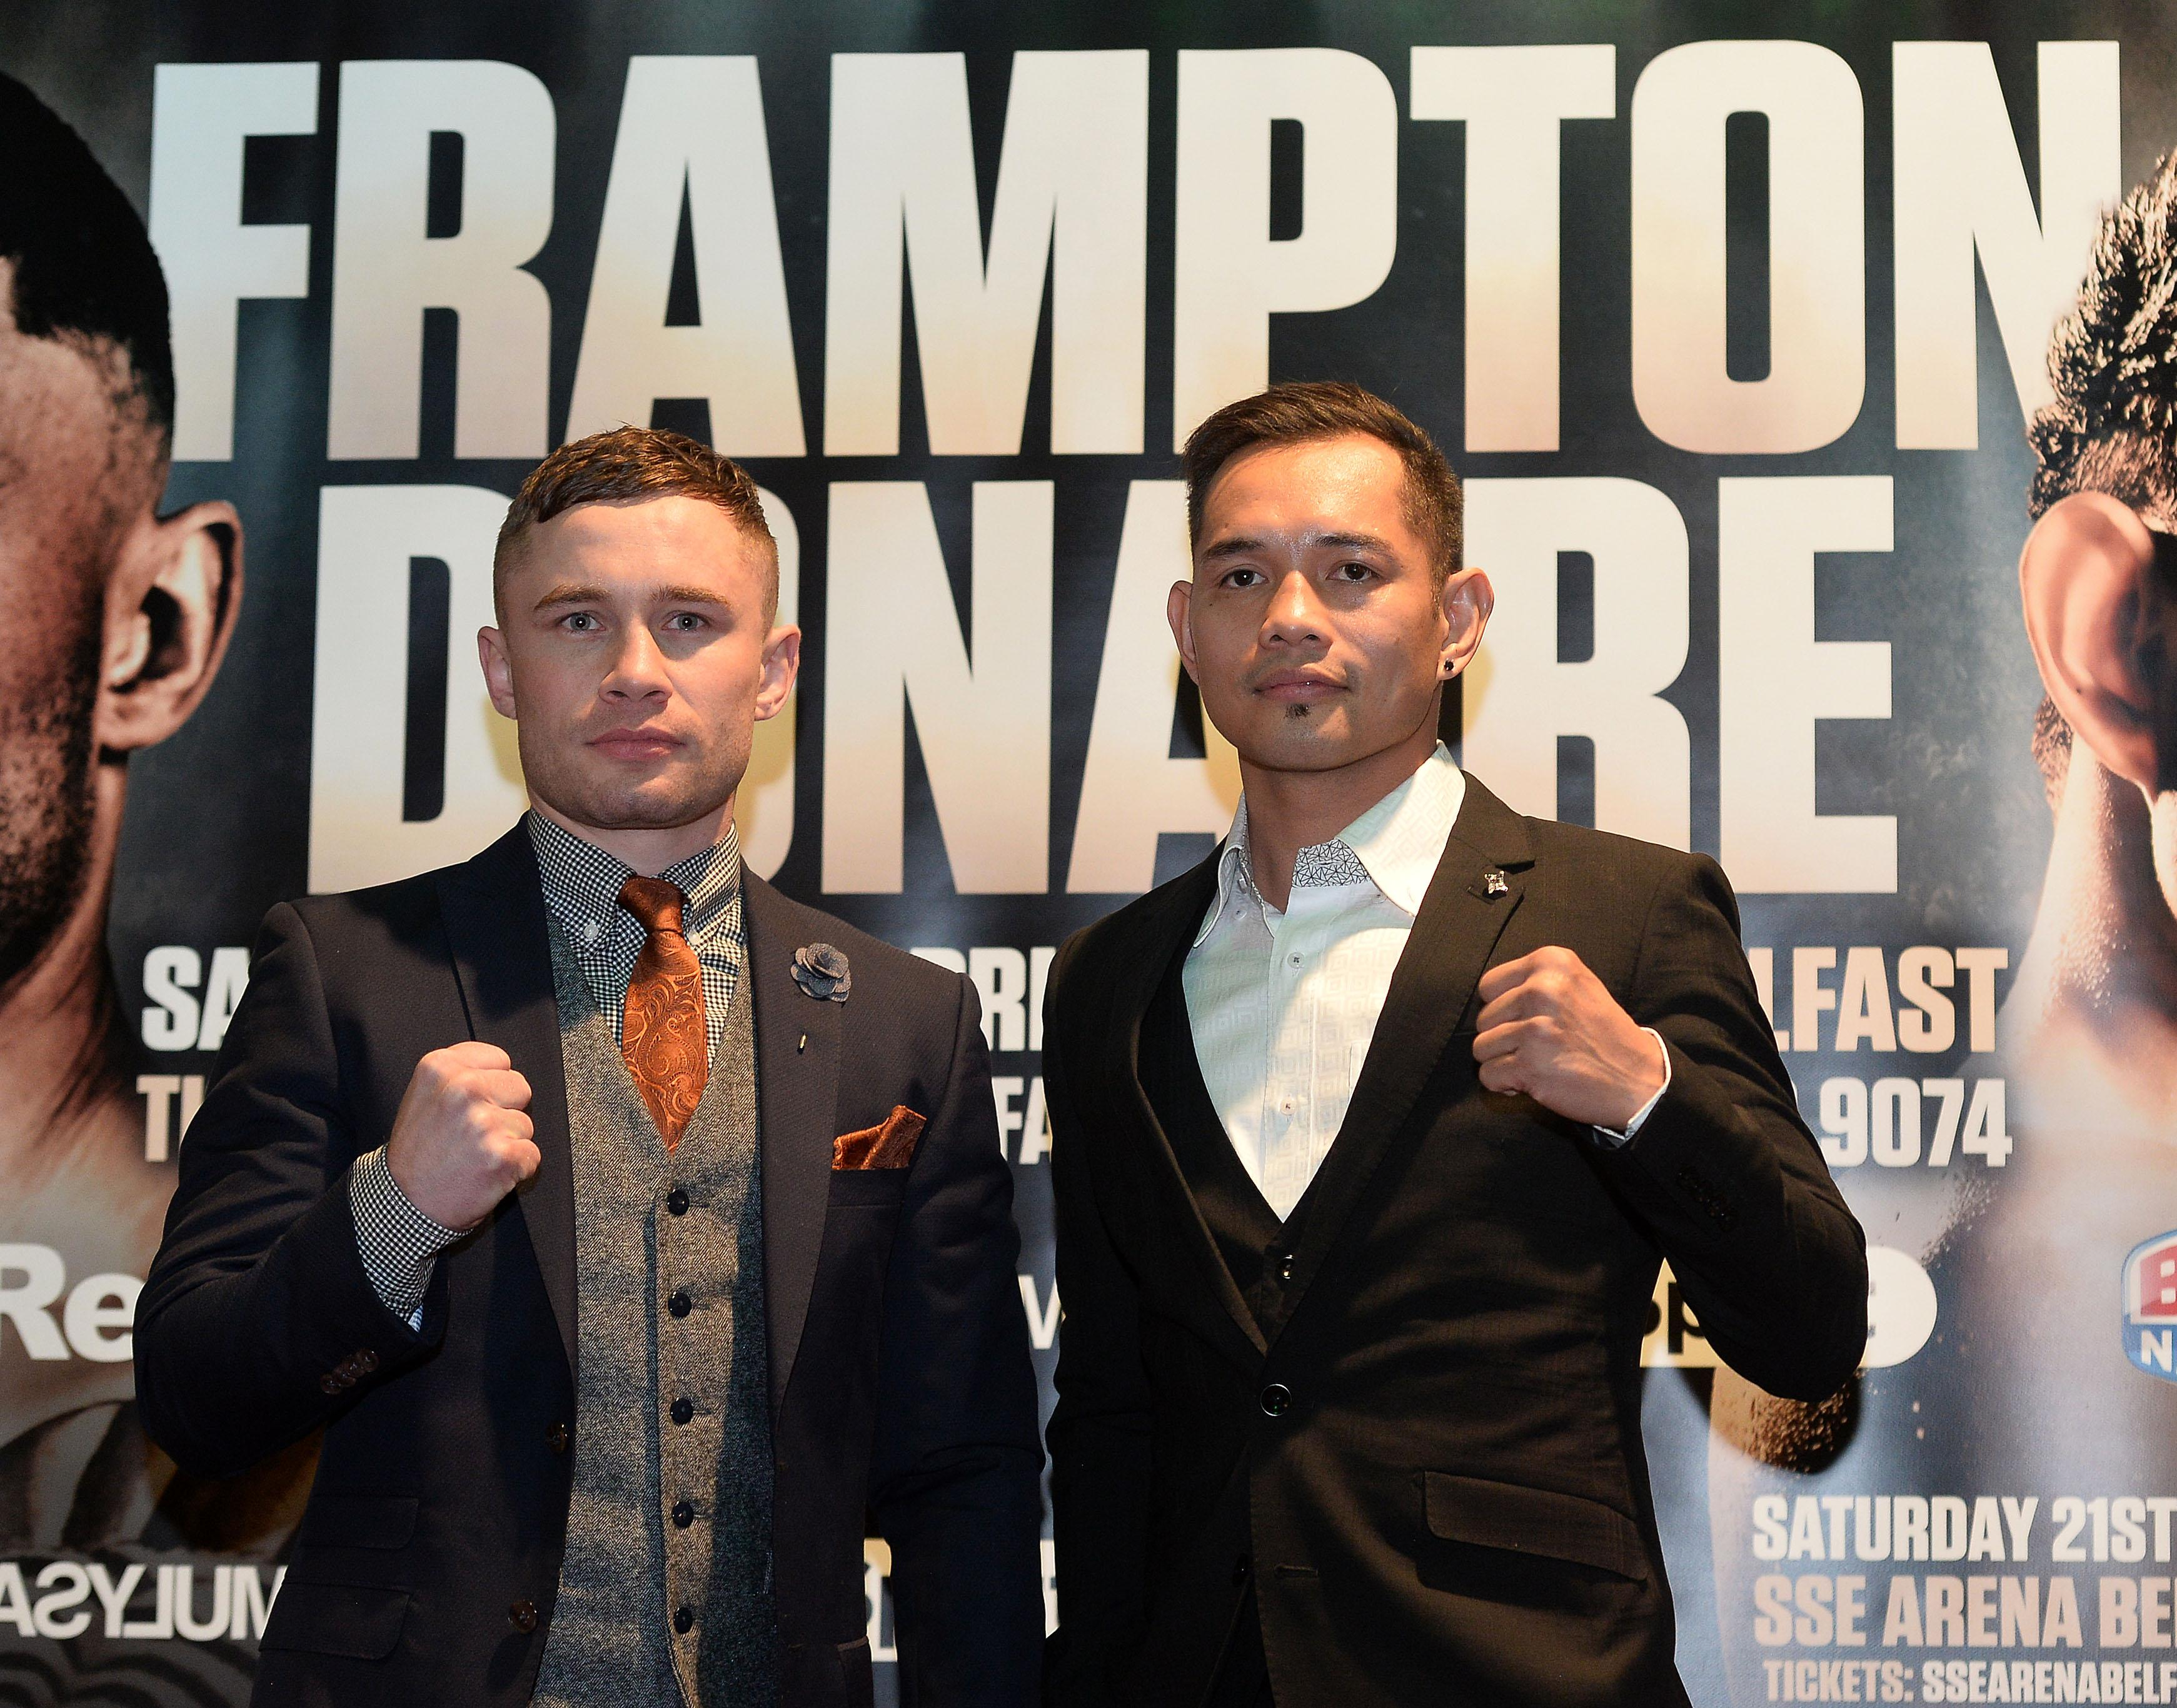 Carl Frampton is taking legal proceeding against his former manager